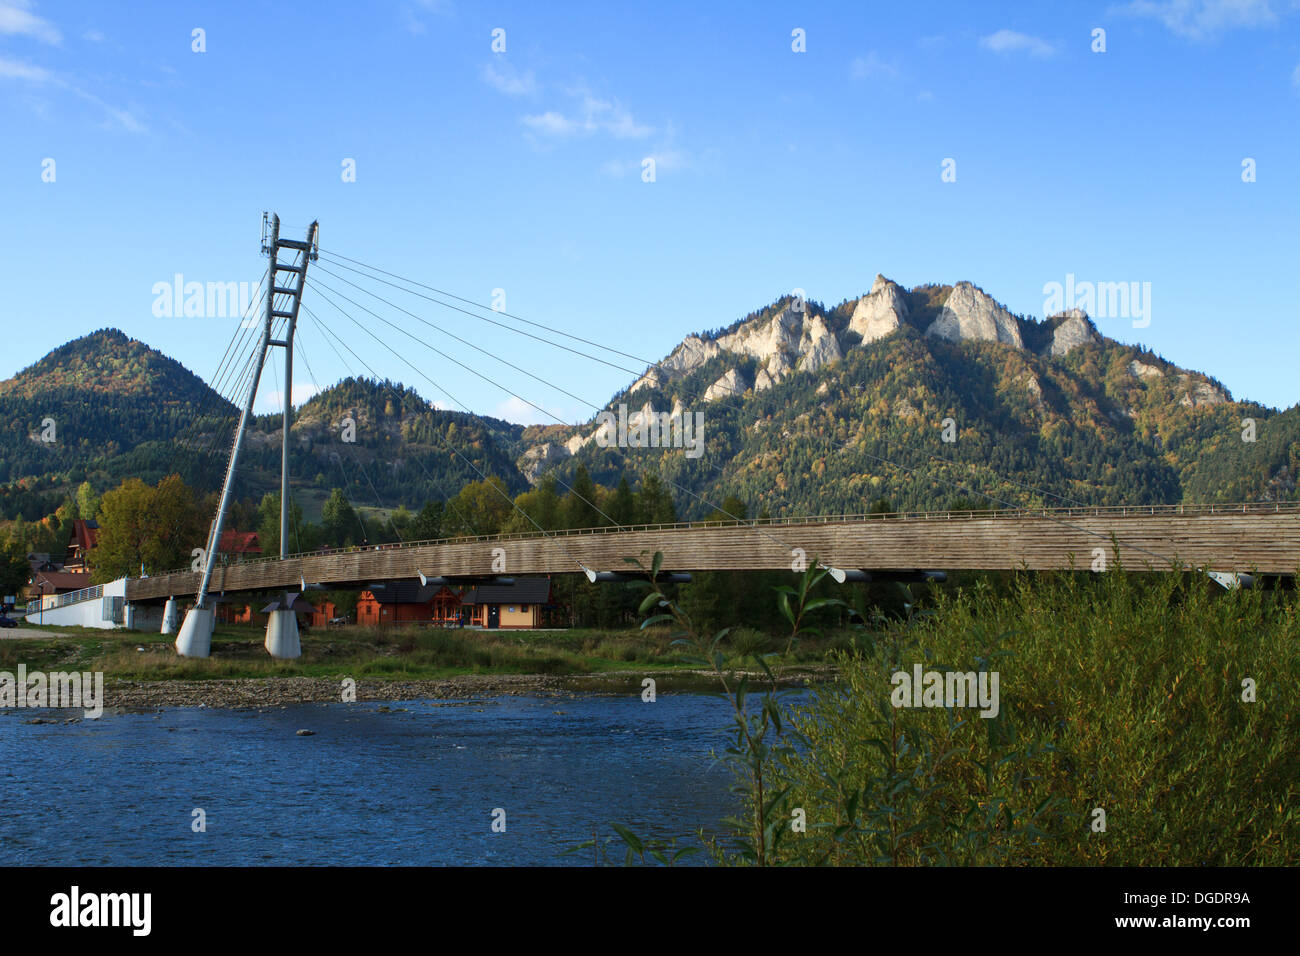 Suspension footpath bridge between Poland and Slovakia over Dunajec river in Pieniny mountains. Trzy Korony peak in background. - Stock Image